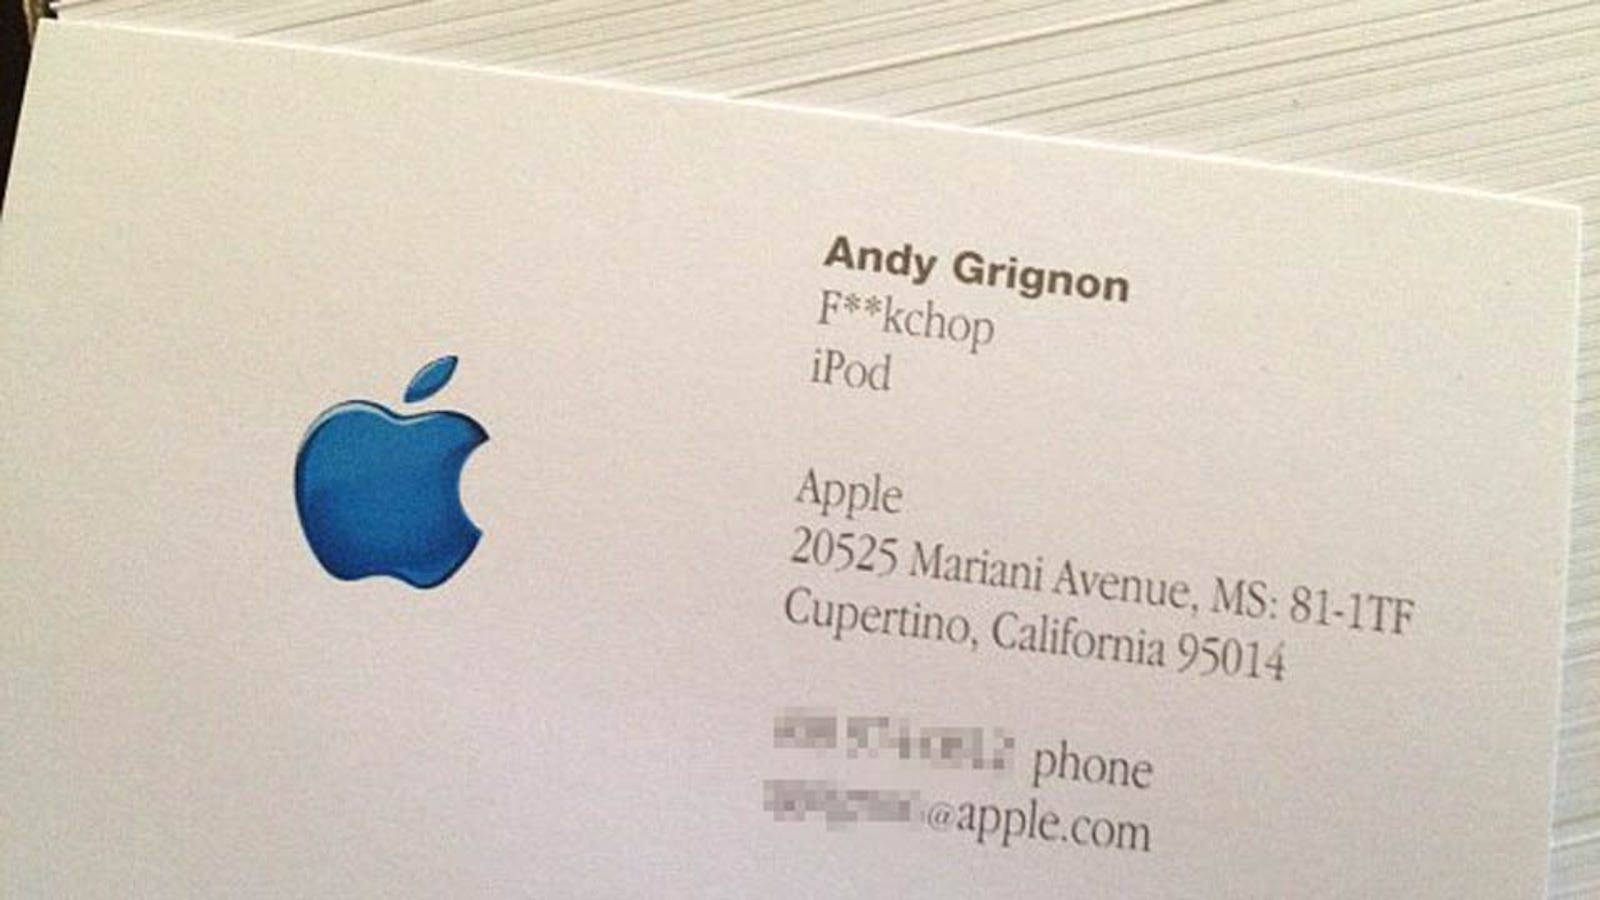 How Steve Jobs Caused the Funniest and Weirdest Apple Business Card ...